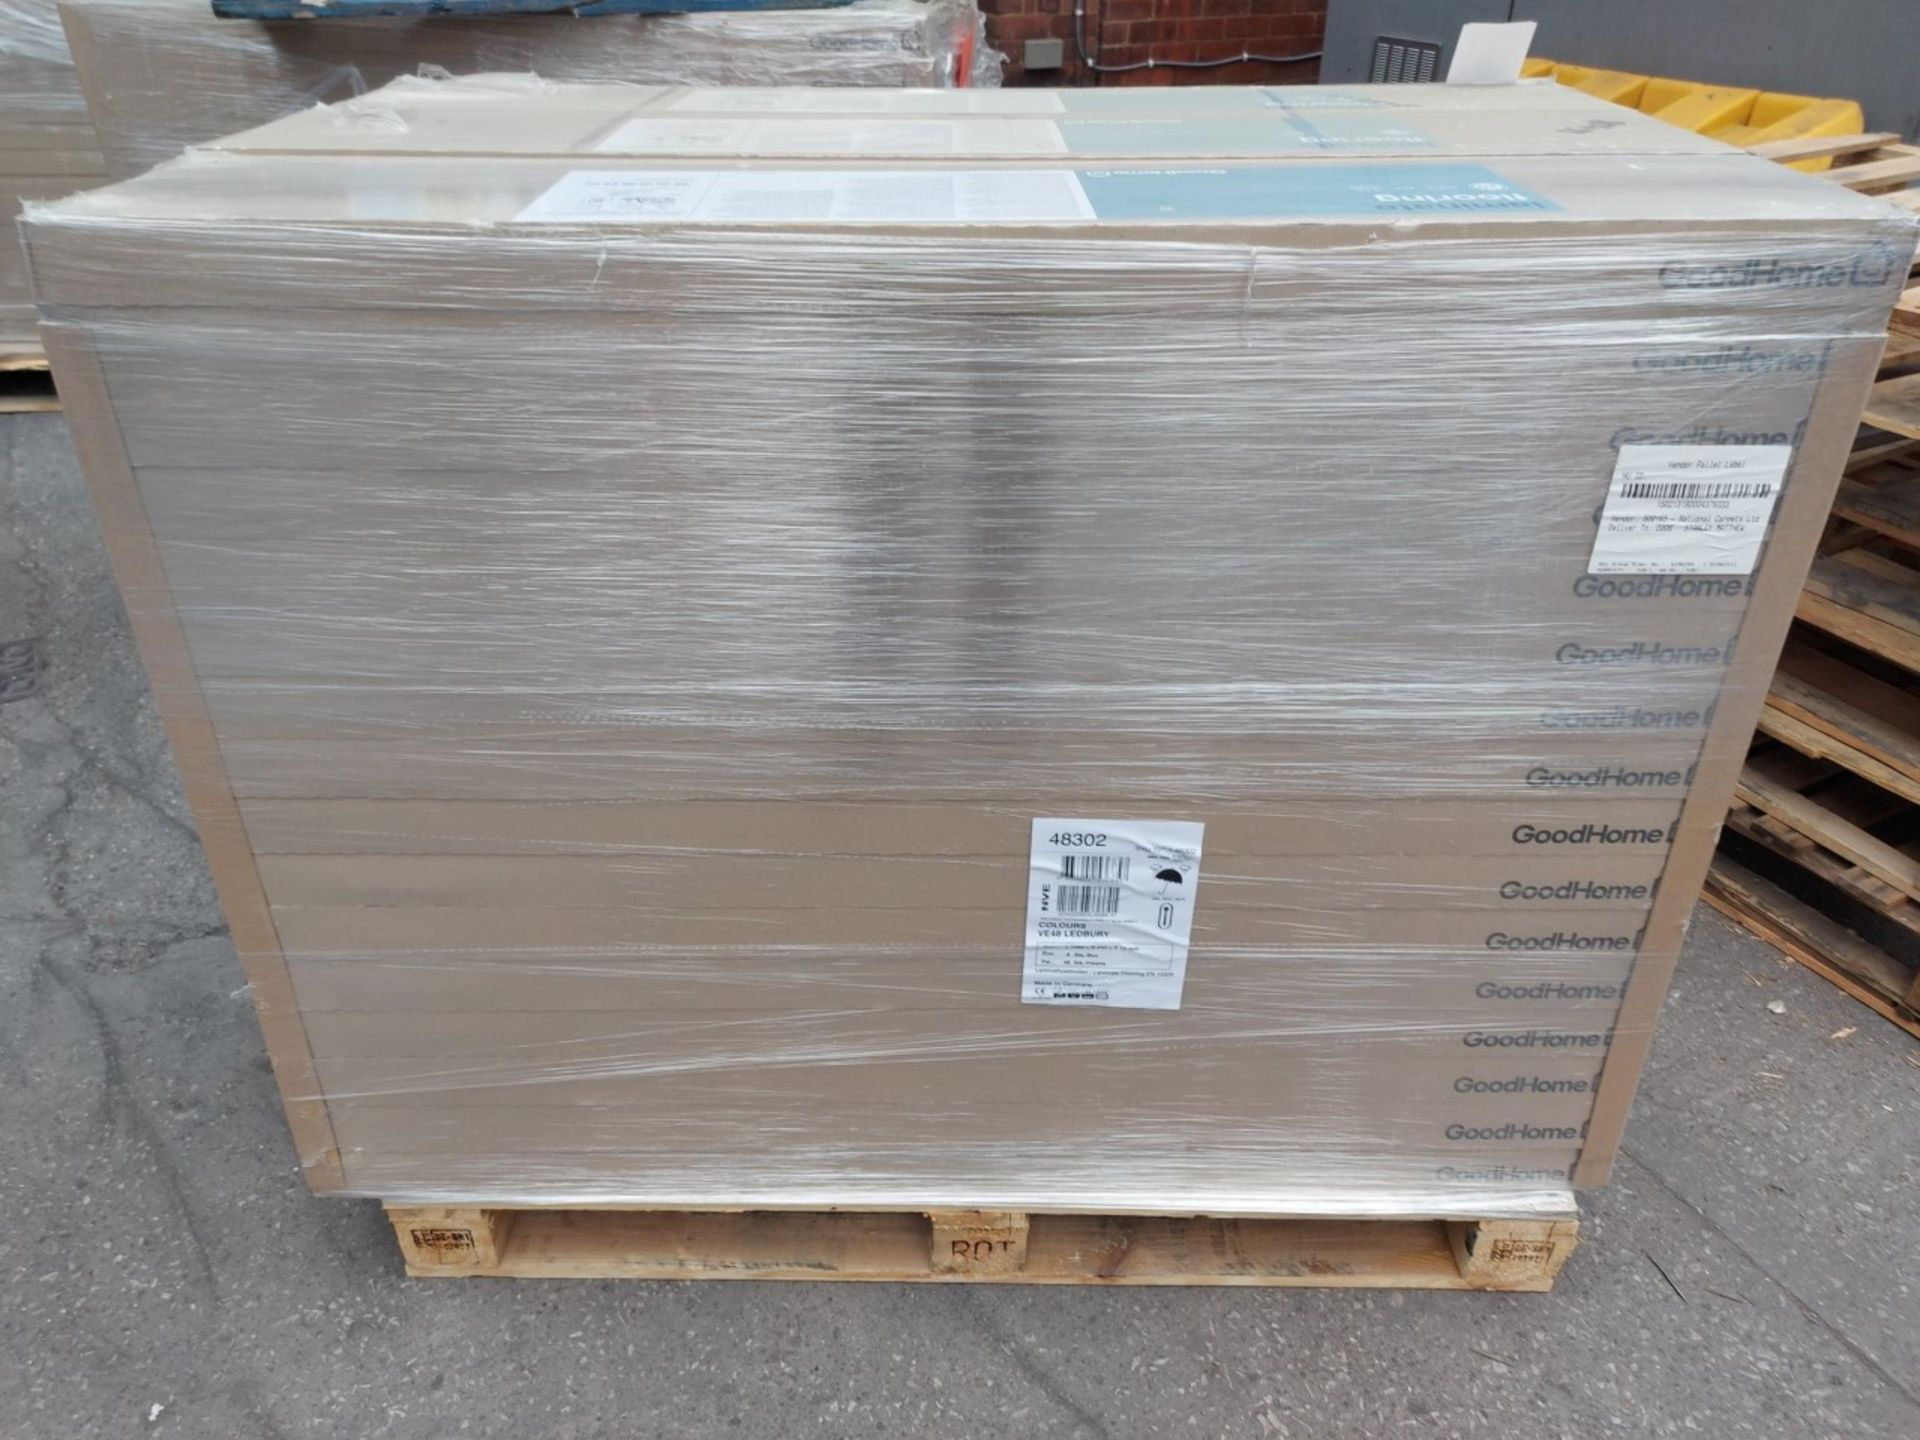 PALLET TO CONTAIN 48 NEW SEALED PACKS OF GOODHOME LEDBURY LIGHT BROWN OAK EFFECT 10MM LAMINATE - Image 2 of 5